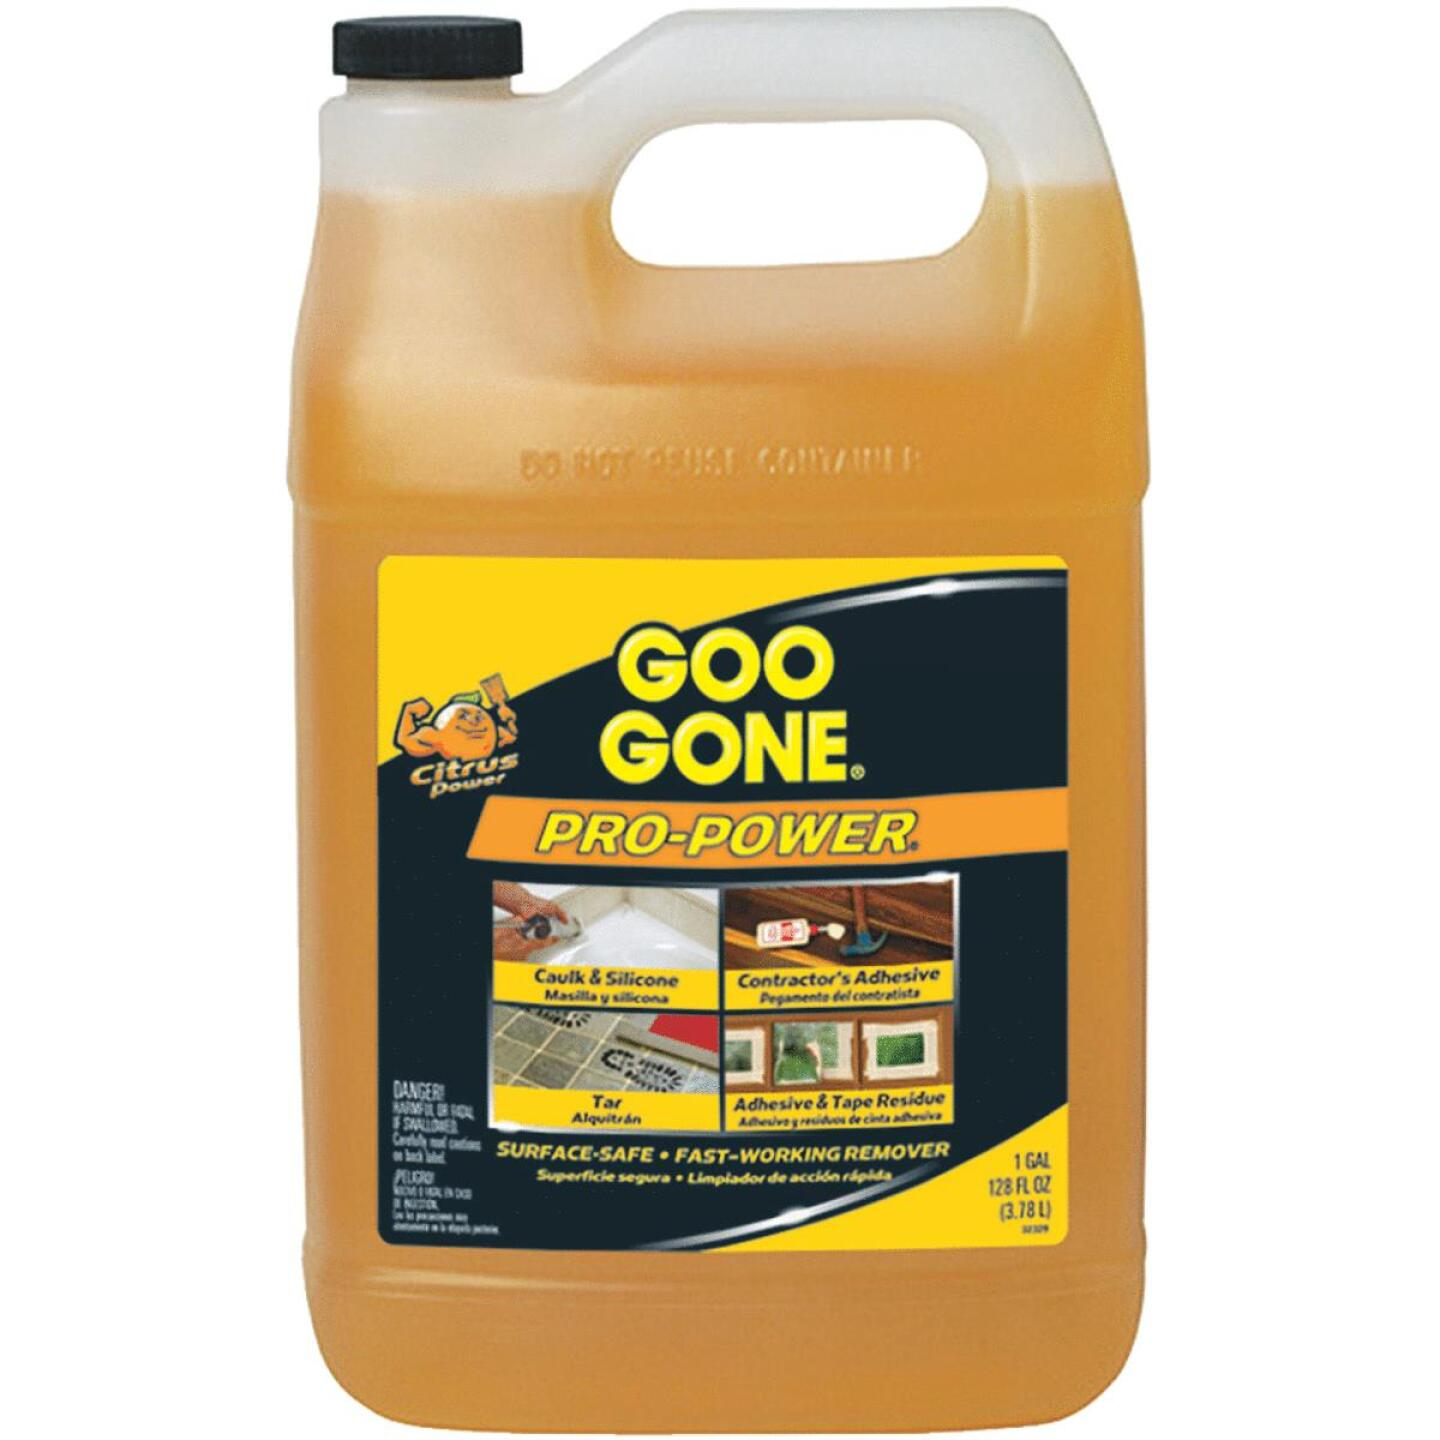 Goo Gone 1 Gal. Pro-Power Adhesive Remover Image 240